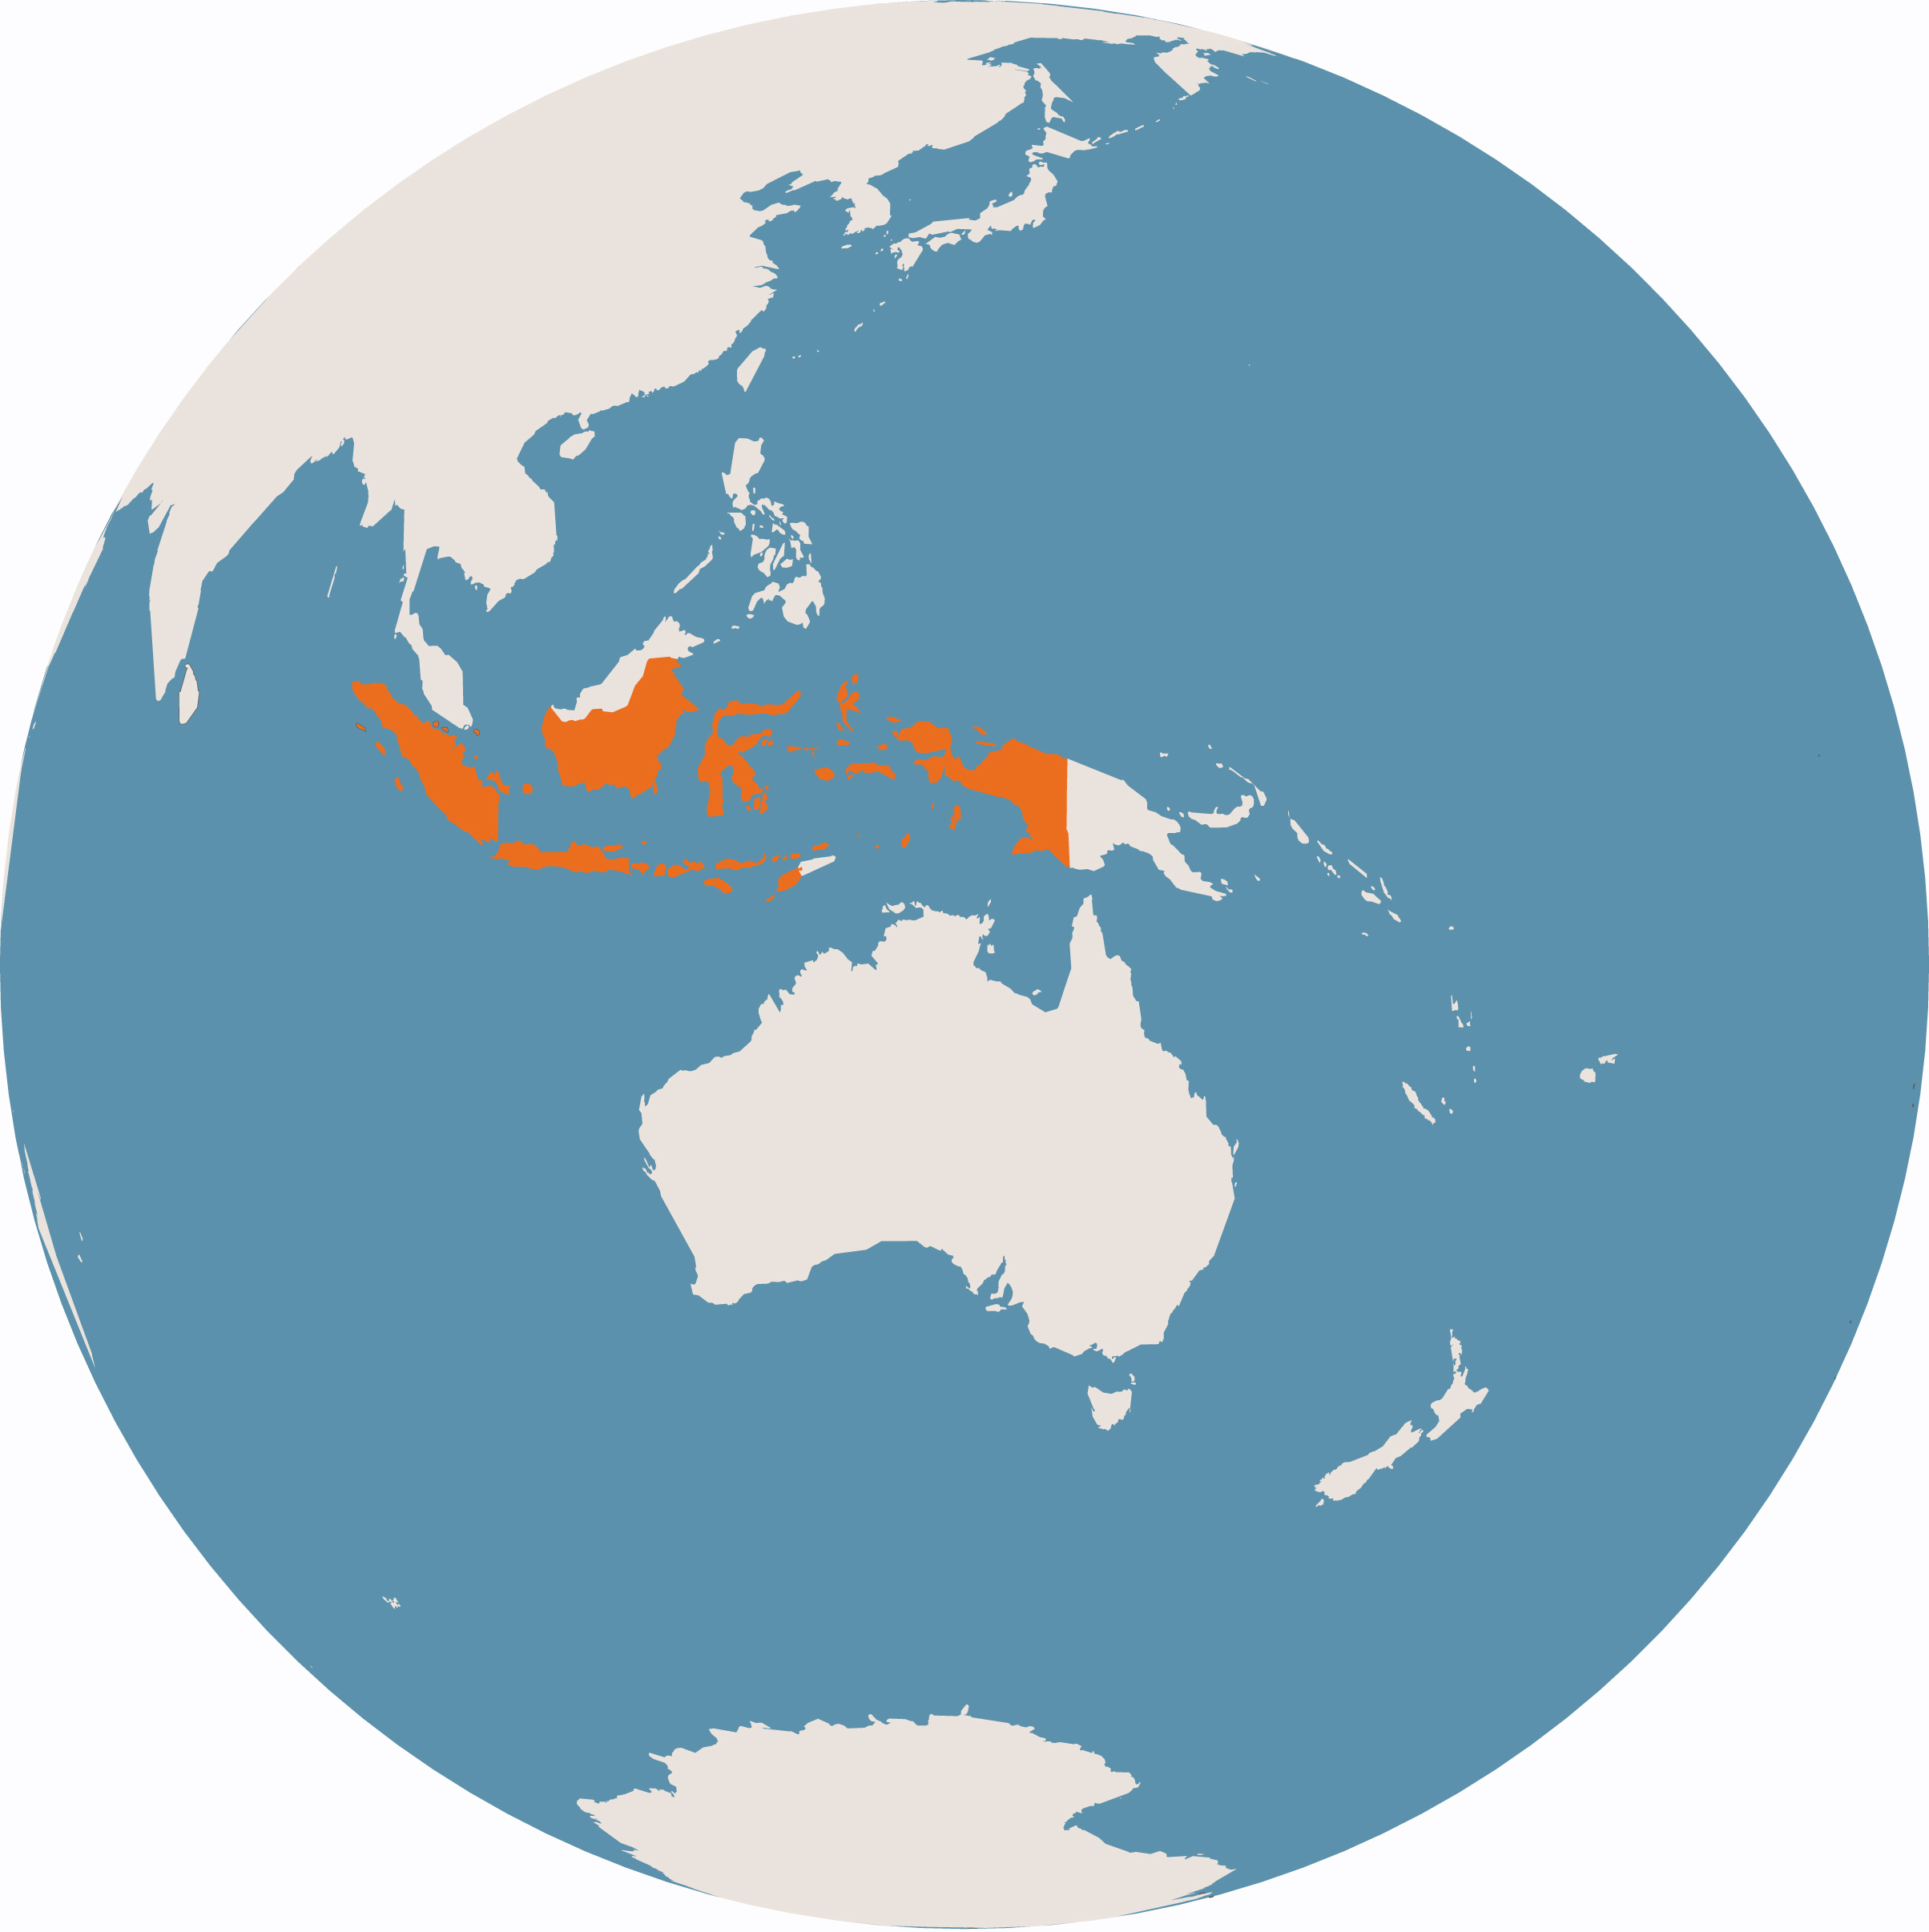 Global perspective of Indonesia